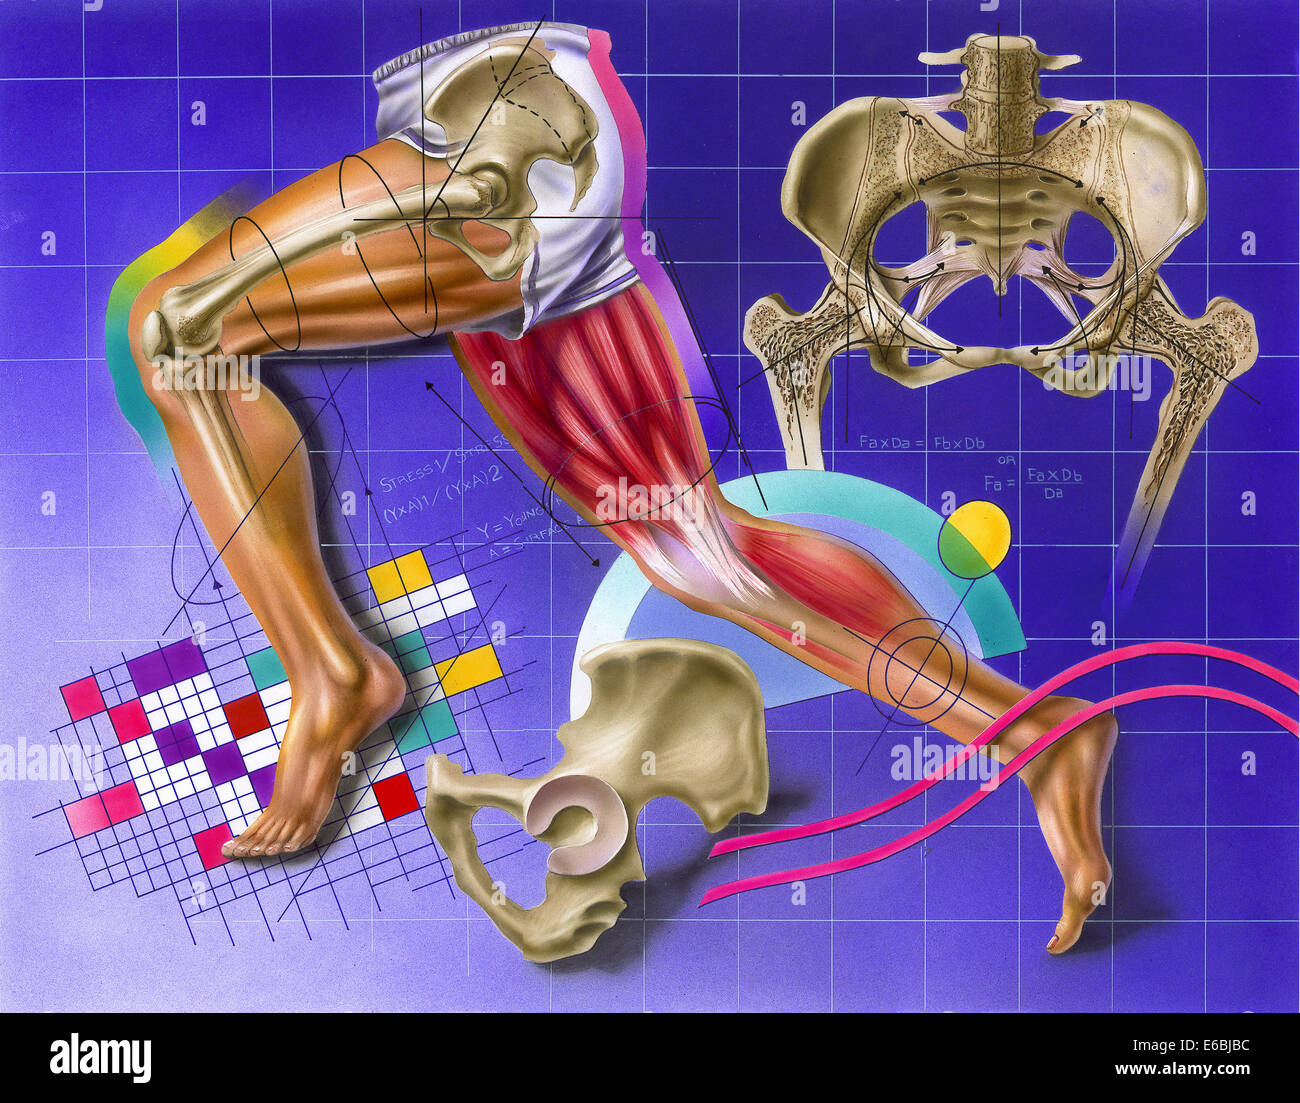 Schematic showing hip and leg motion. - Stock Image